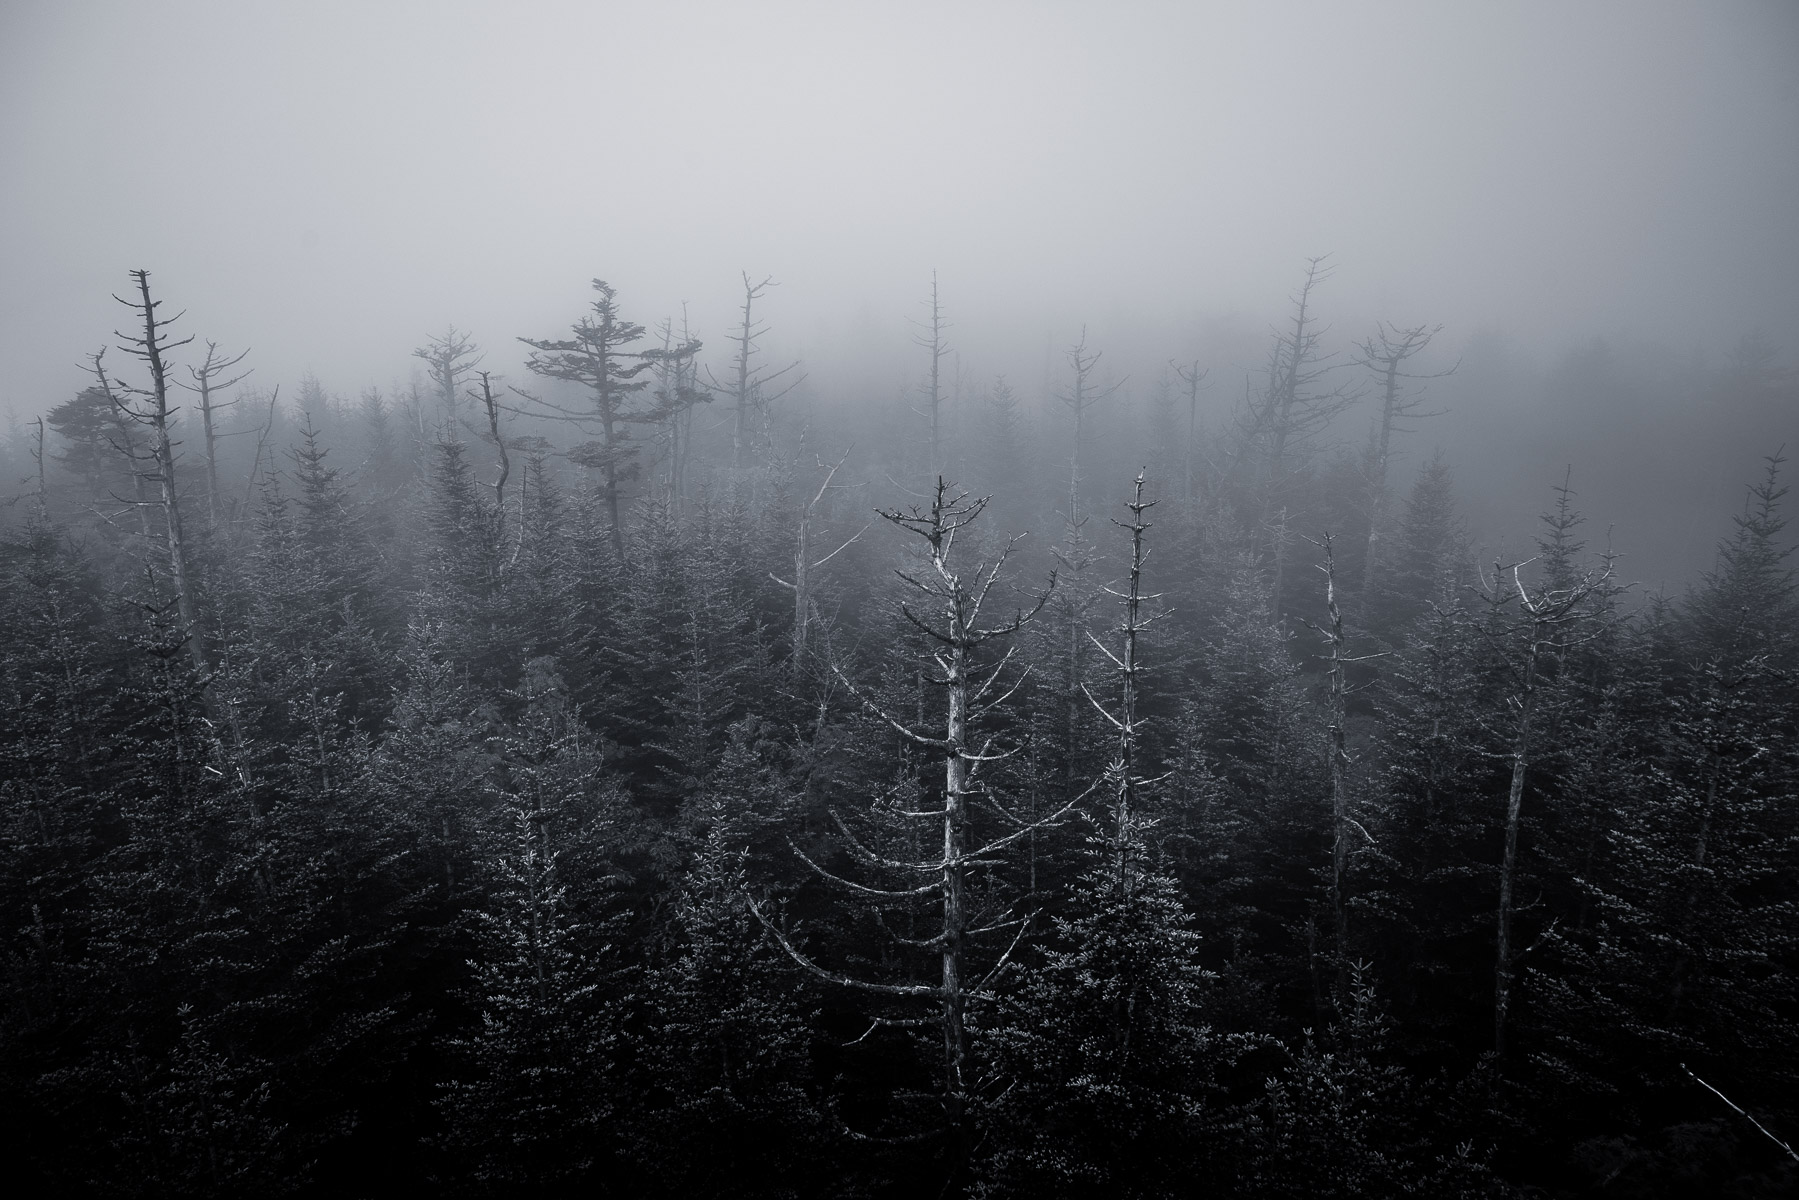 Trees in the fog atop Clingmans Dome in the Great Smoky Mountains National Park, Tennessee.